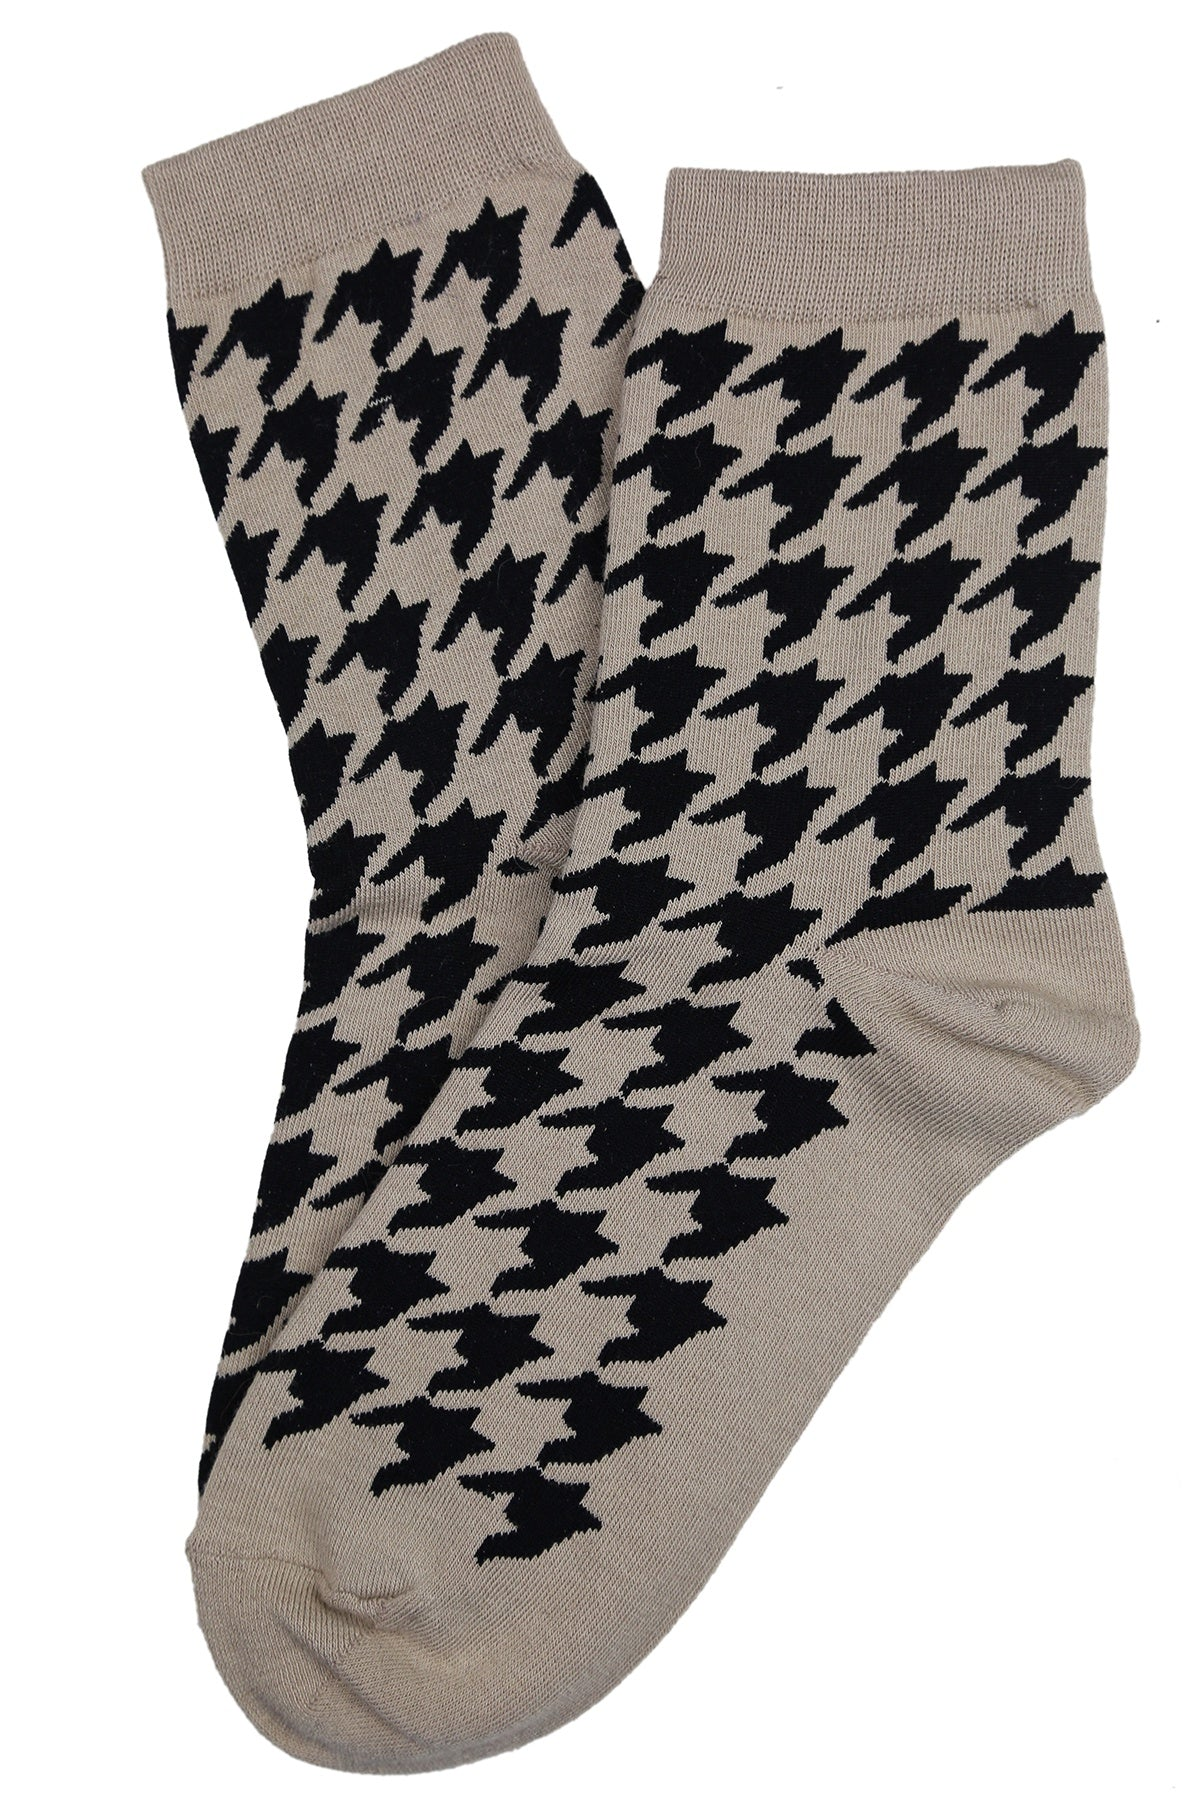 Hilary Houndstooth Cotton Socks Beige